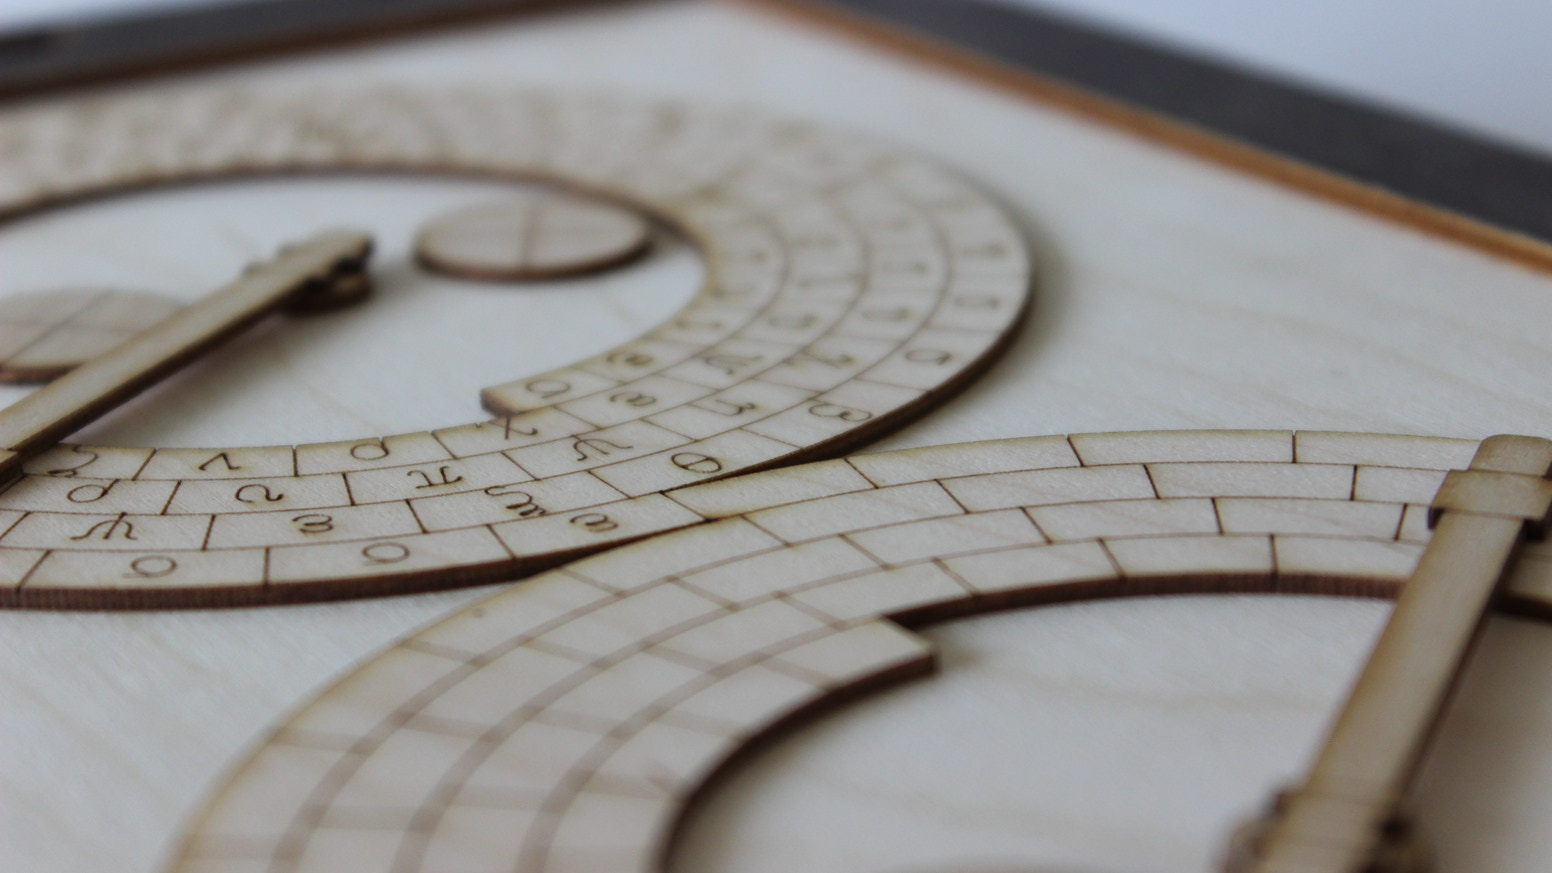 Challenging wooden puzzles that combine to tell a story of heroes, Gods and monsters, based around the Greek Antikythera Mechanism